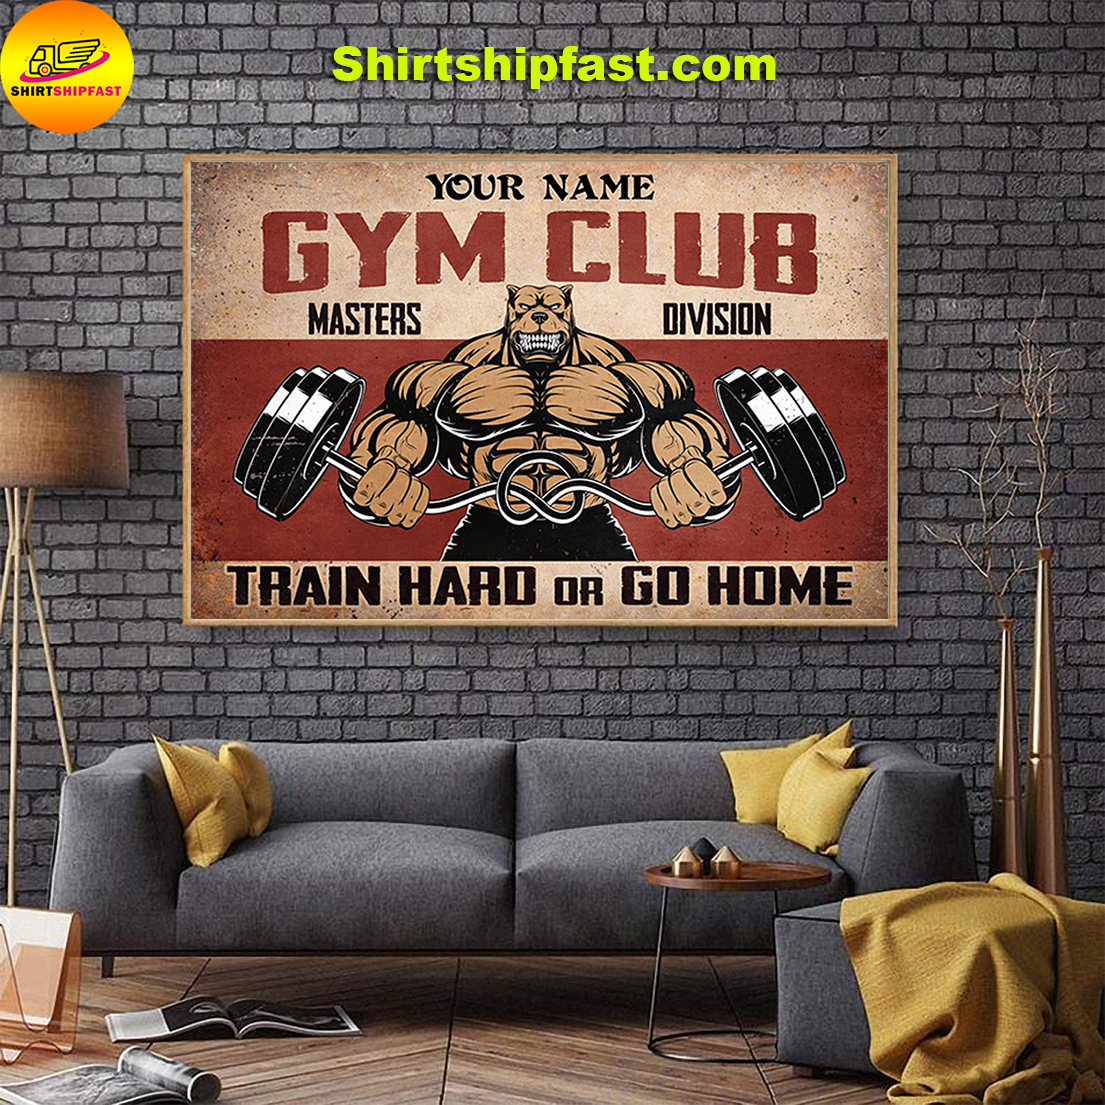 Personalized custom name Pitbull Gym club masters division train hard or go home poster - Picture 1